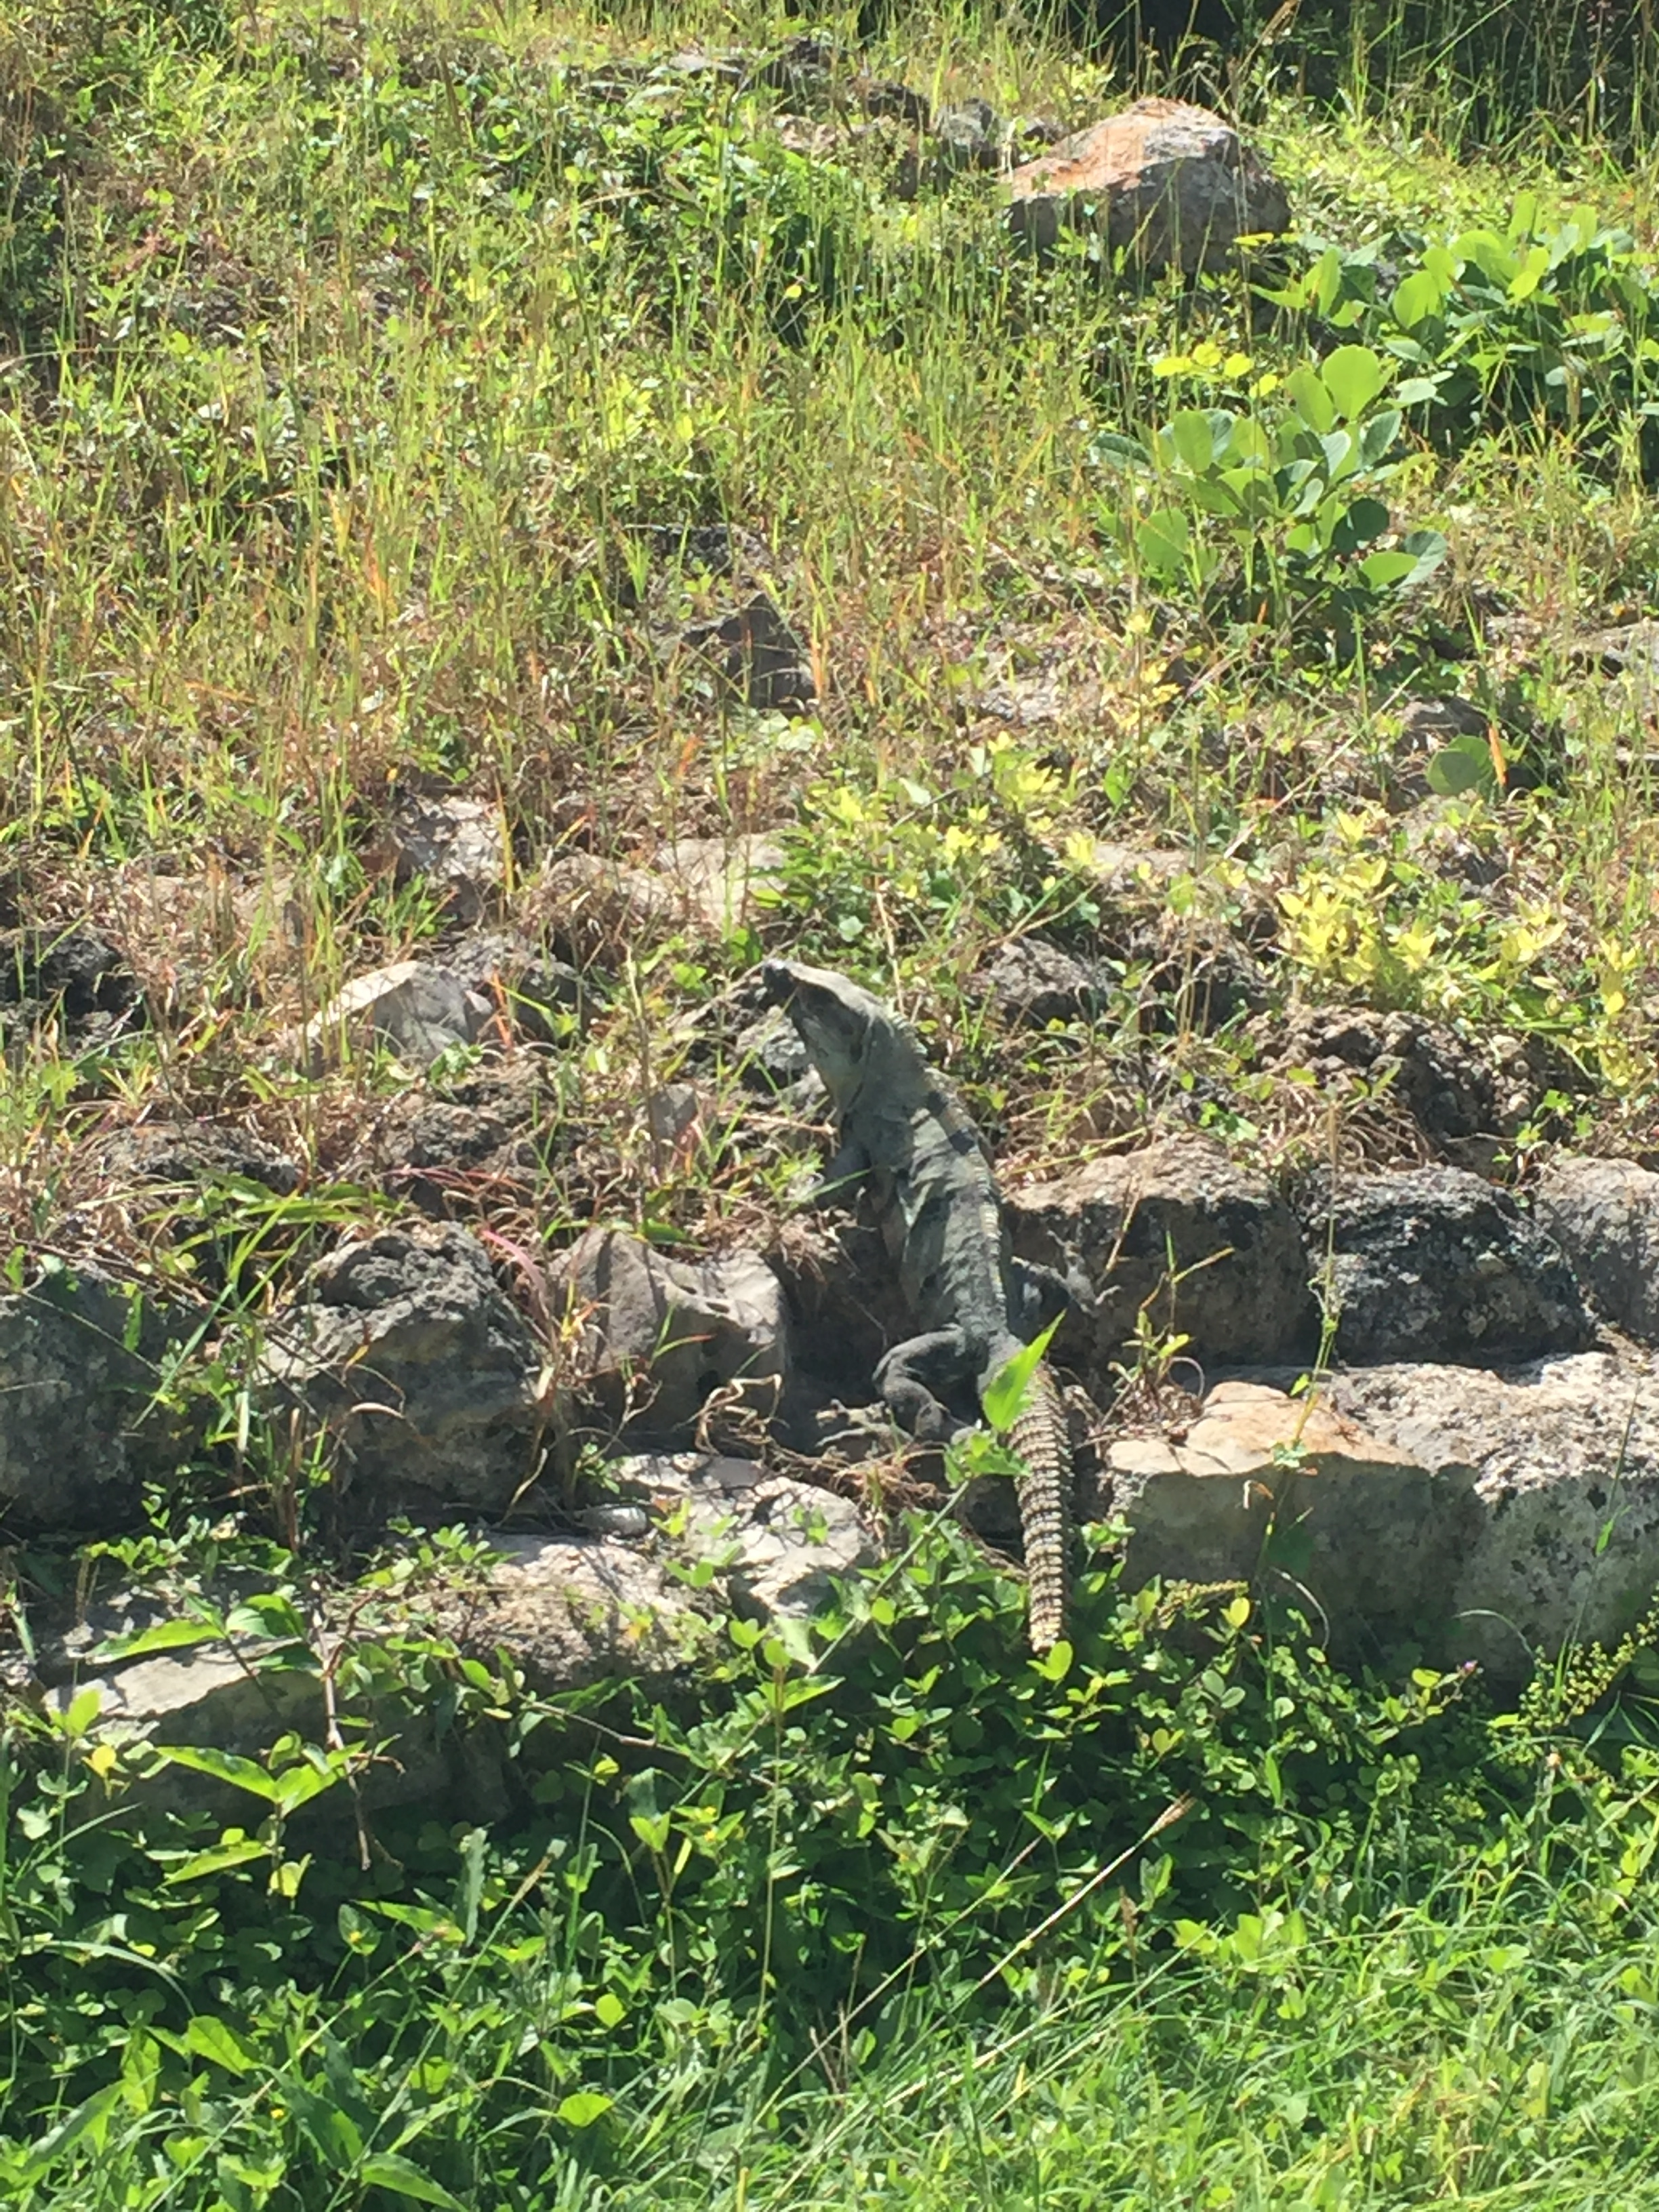 The iguana pretending he is invisible.